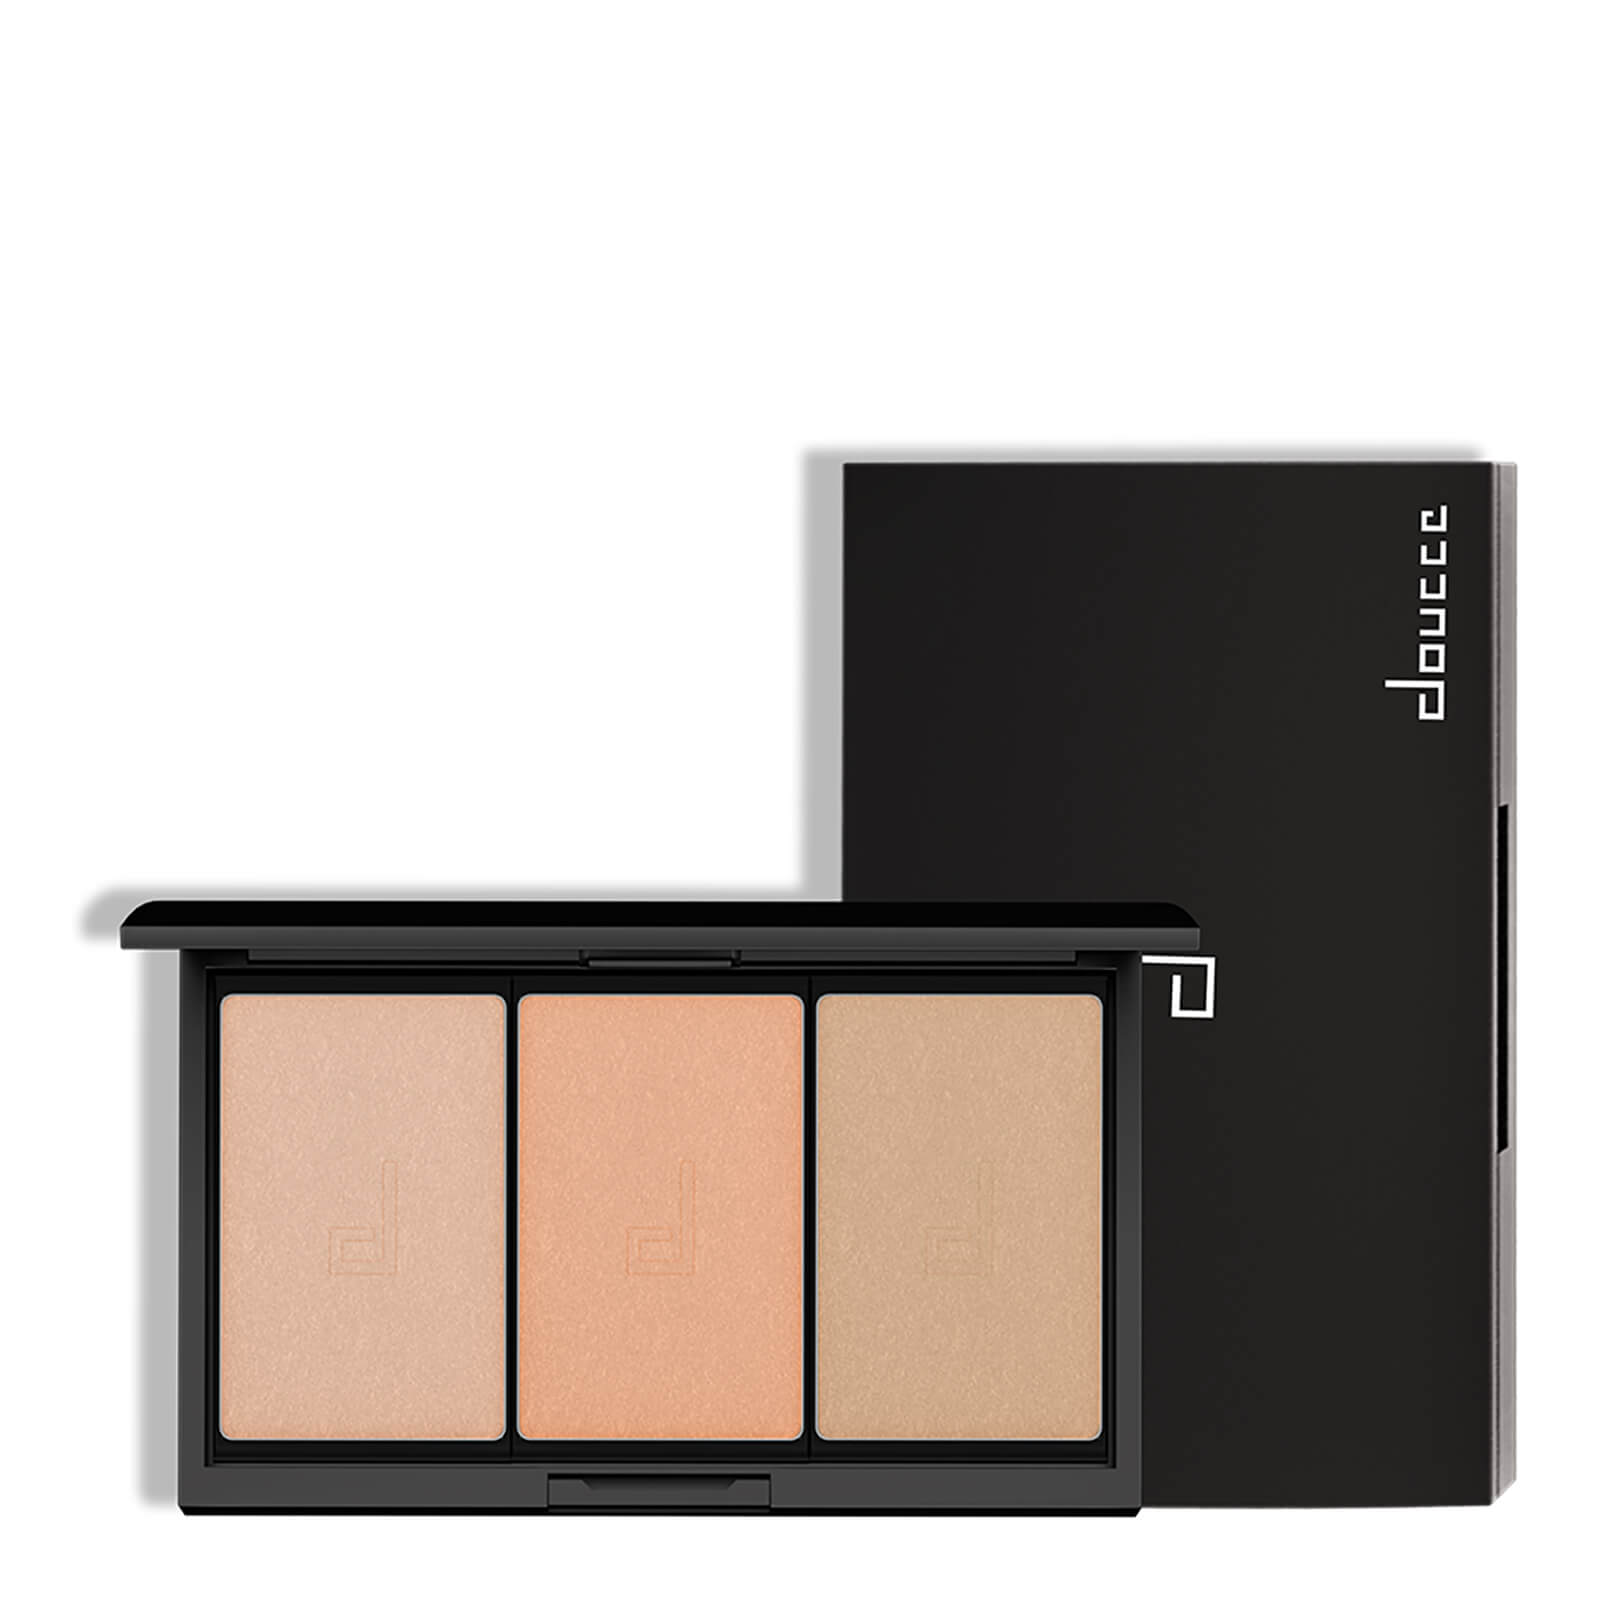 49d4ae471f4 doucce Freematic Highlighter Pro Palette - Glow Effect (3) 6.8g | Free  Shipping | Lookfantastic